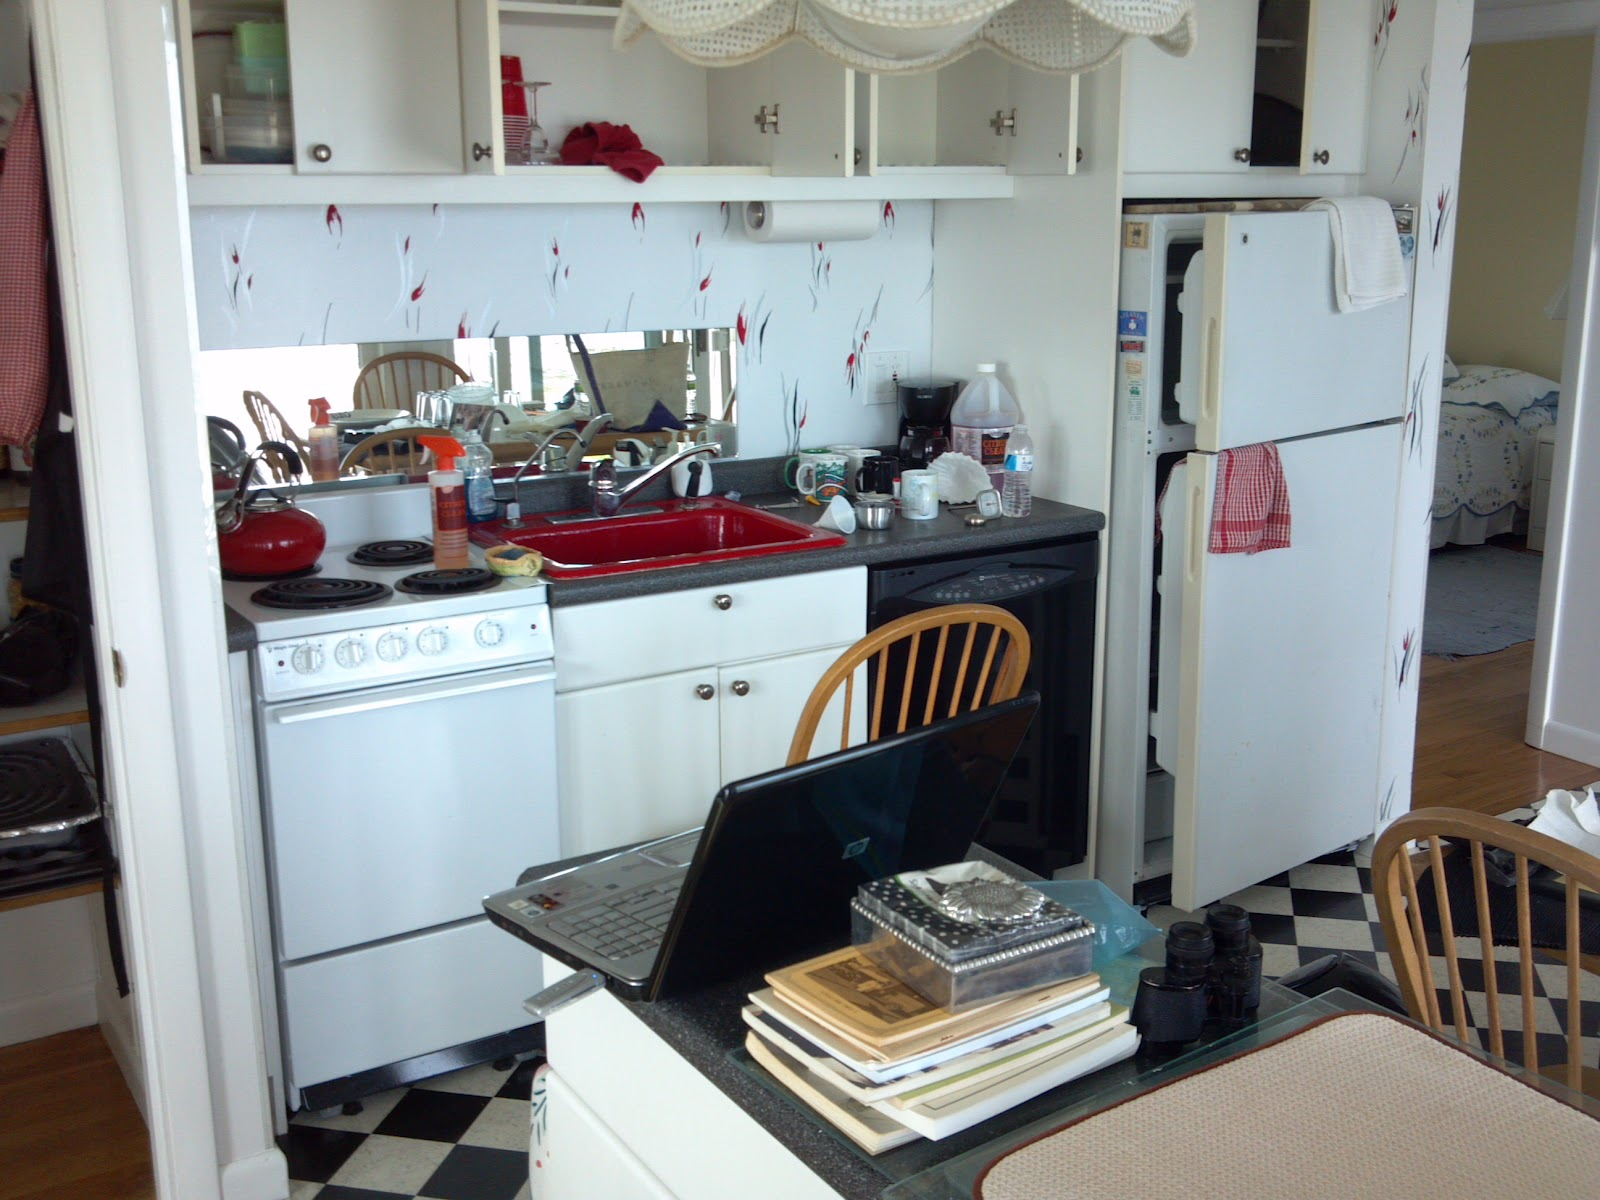 About Opening Up The Wellfleet Cottage | Jim Sells Cape Cod Real Estate